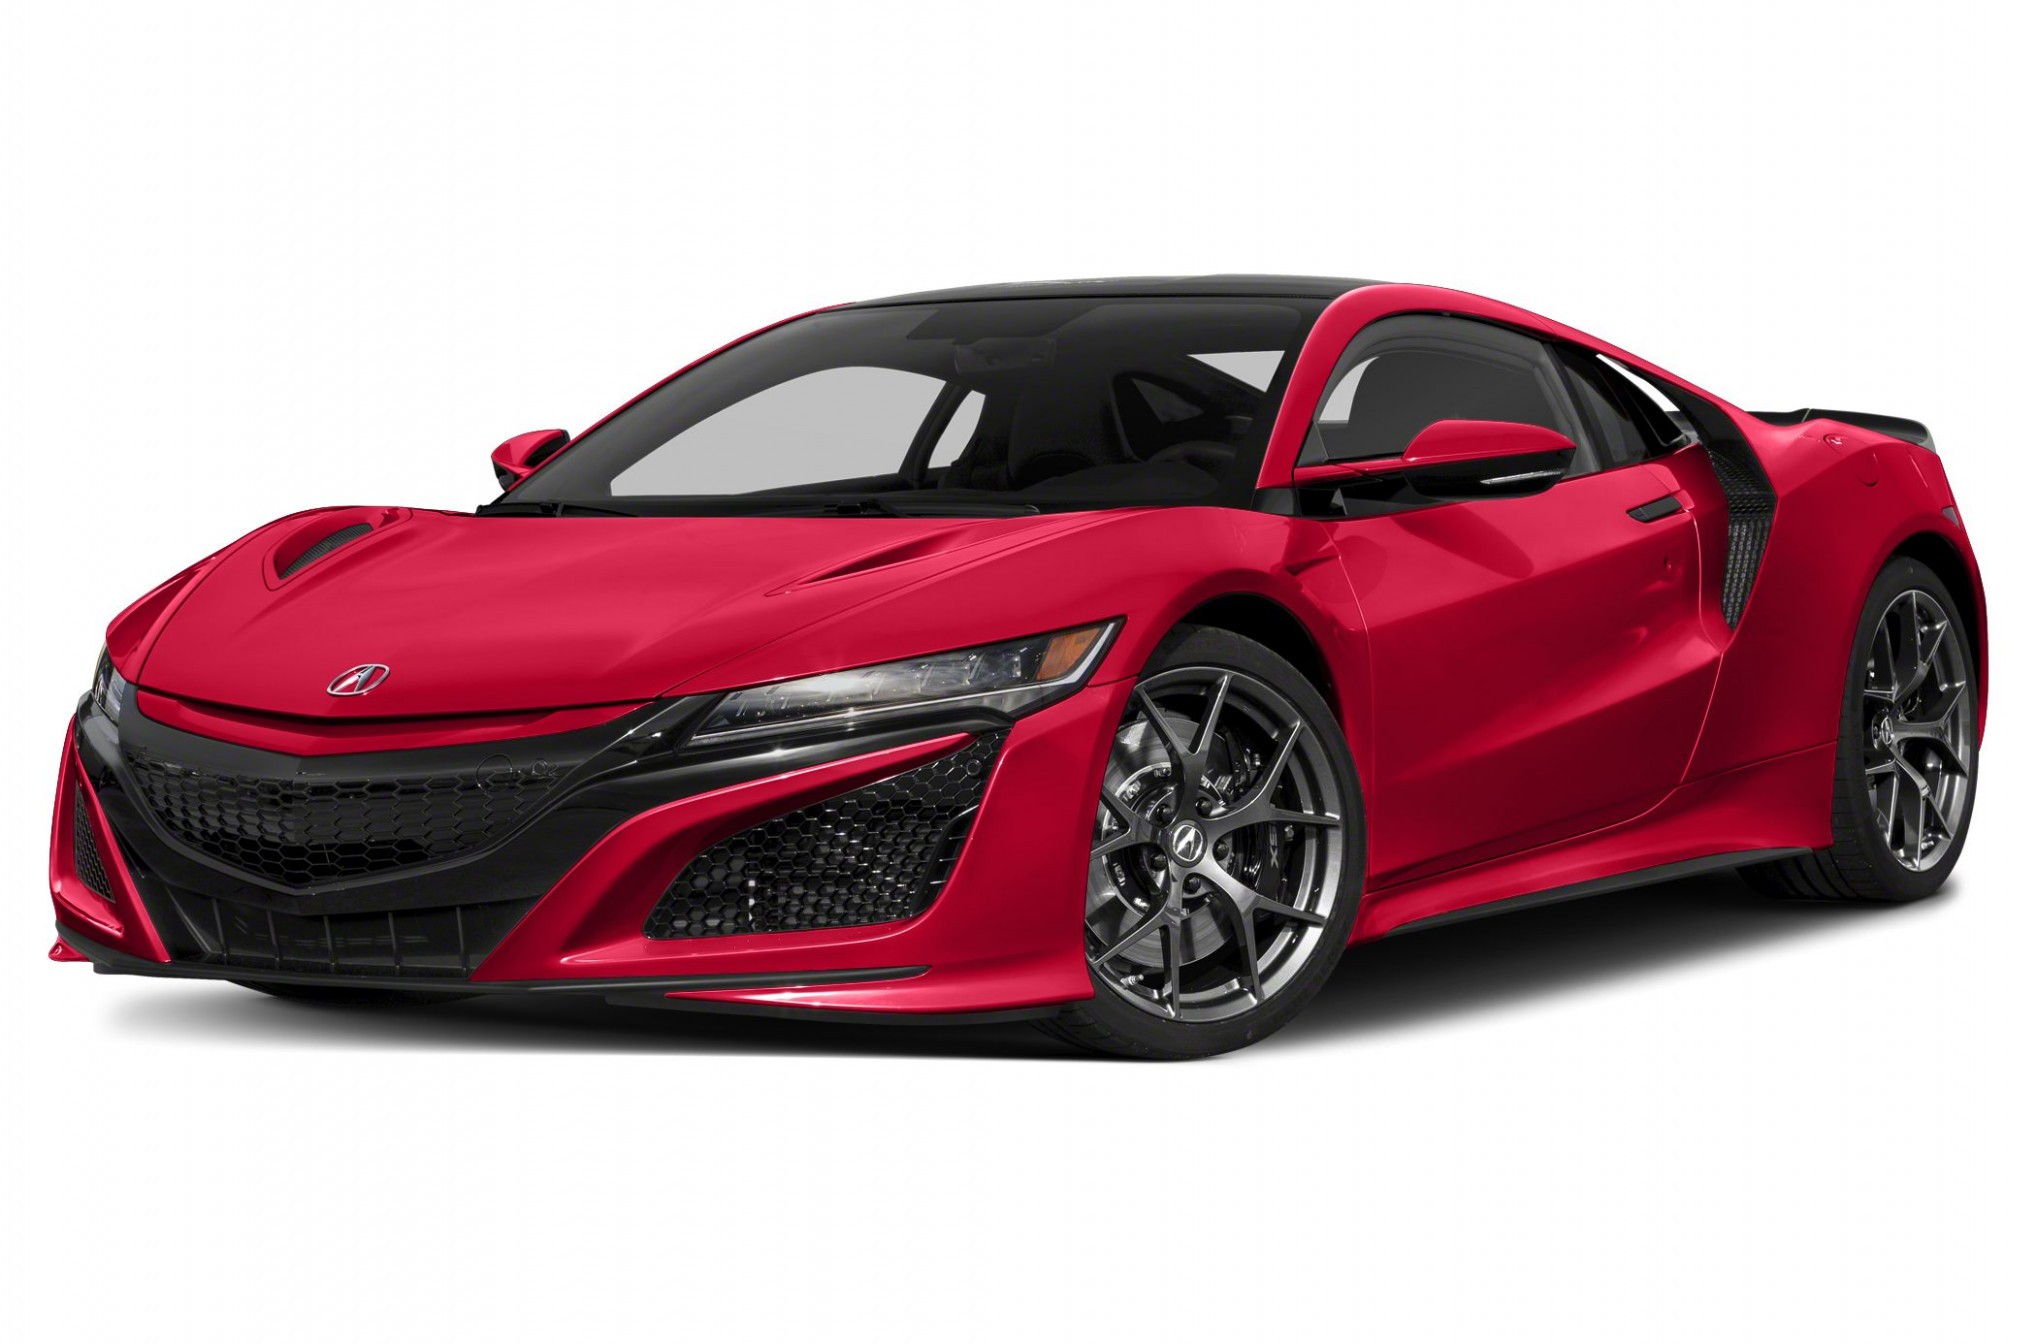 10 Acura NSX Reviews, Specs, Photos - 2020 acura nsx horsepower